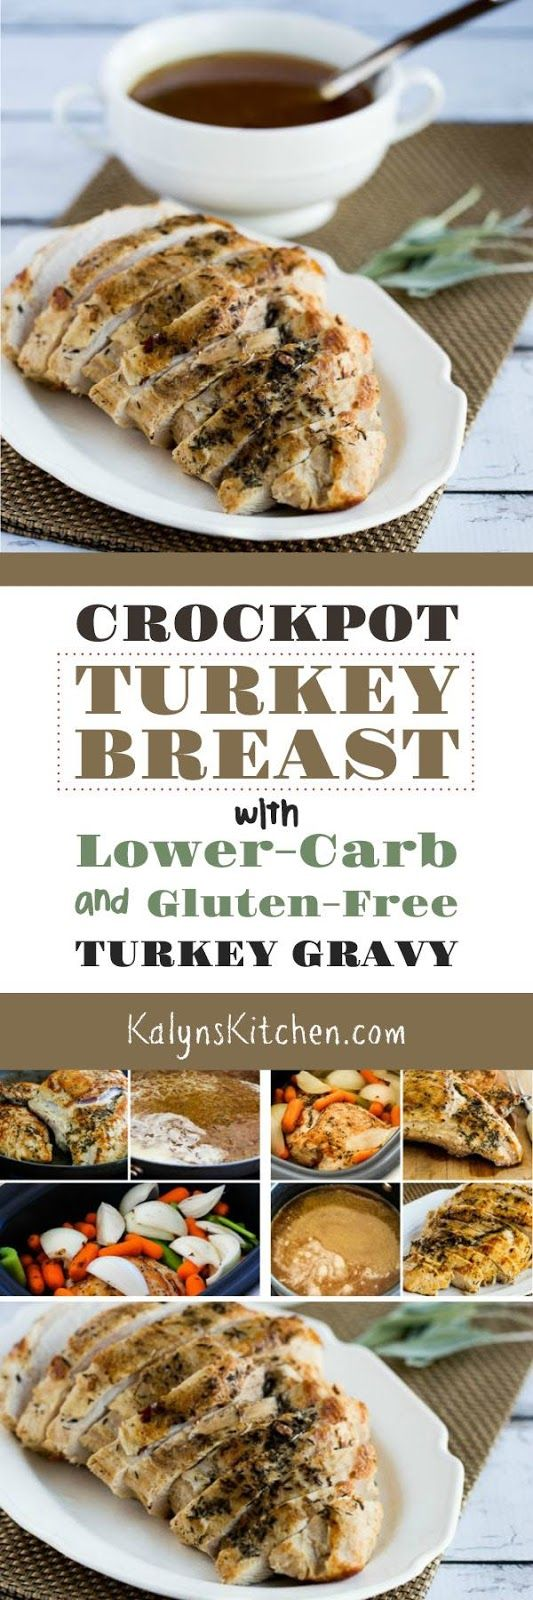 how to cook a whole turkey in the instant pot